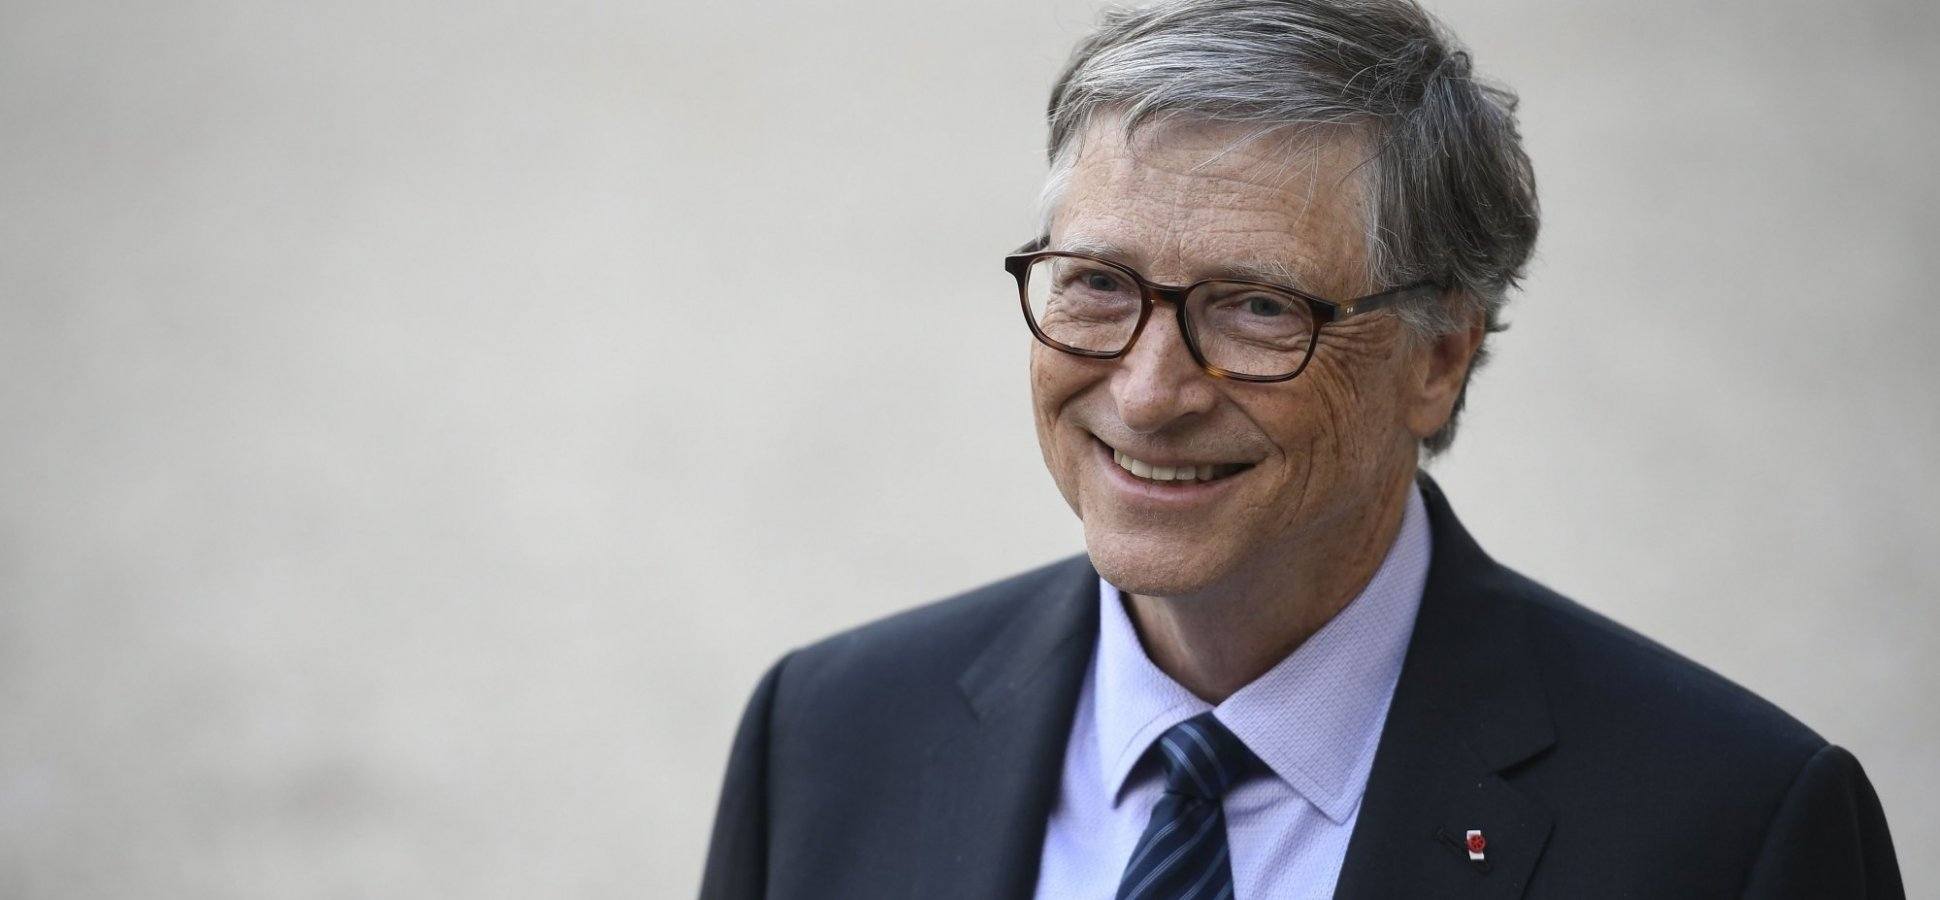 Bill Gates Says He Now Asks 4 Questions That He Would Never Have Asked at Age 25